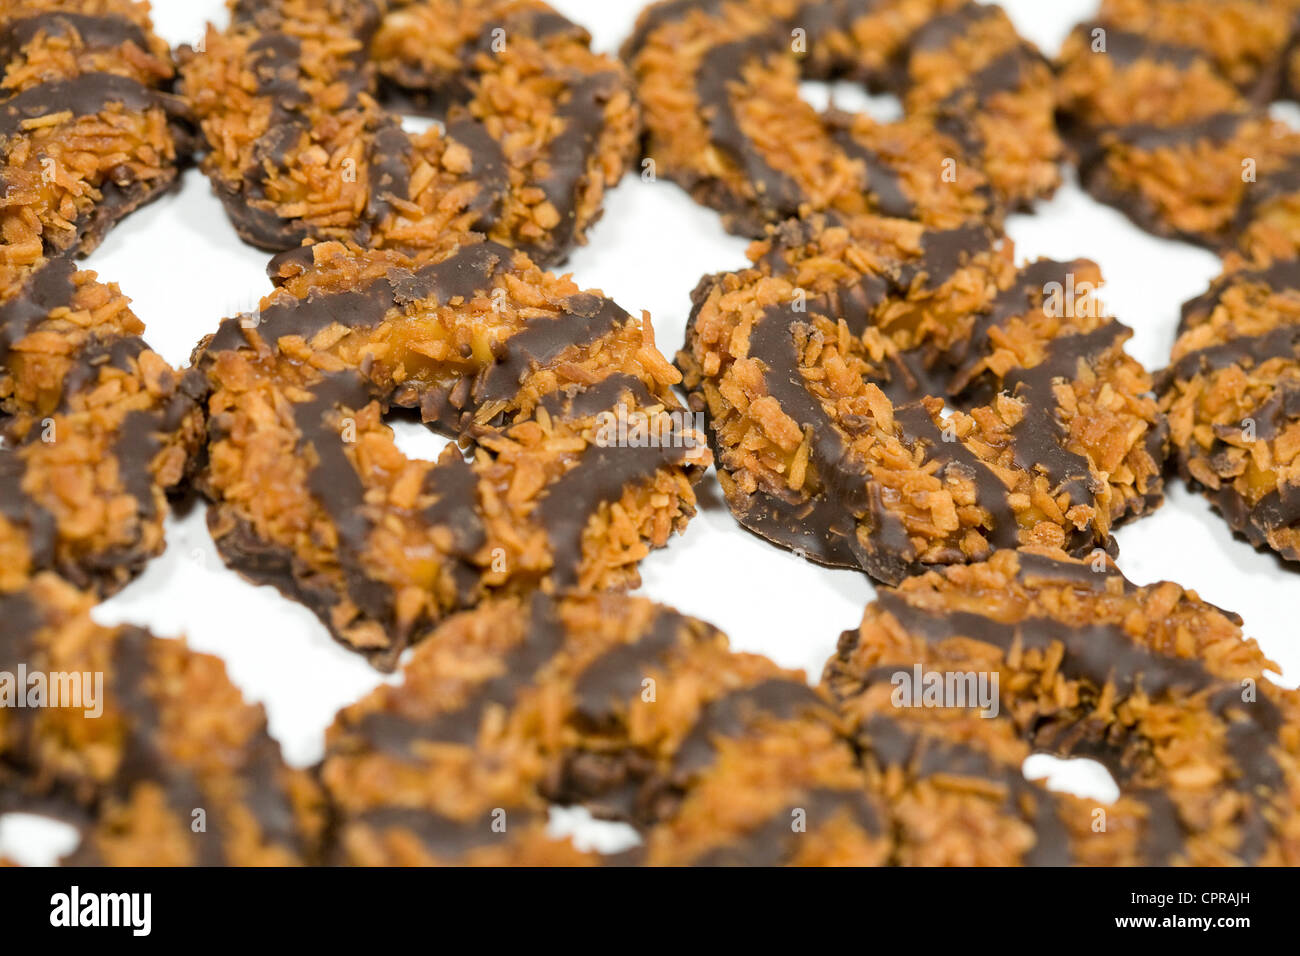 Samoas Girl Scout cookies.  - Stock Image